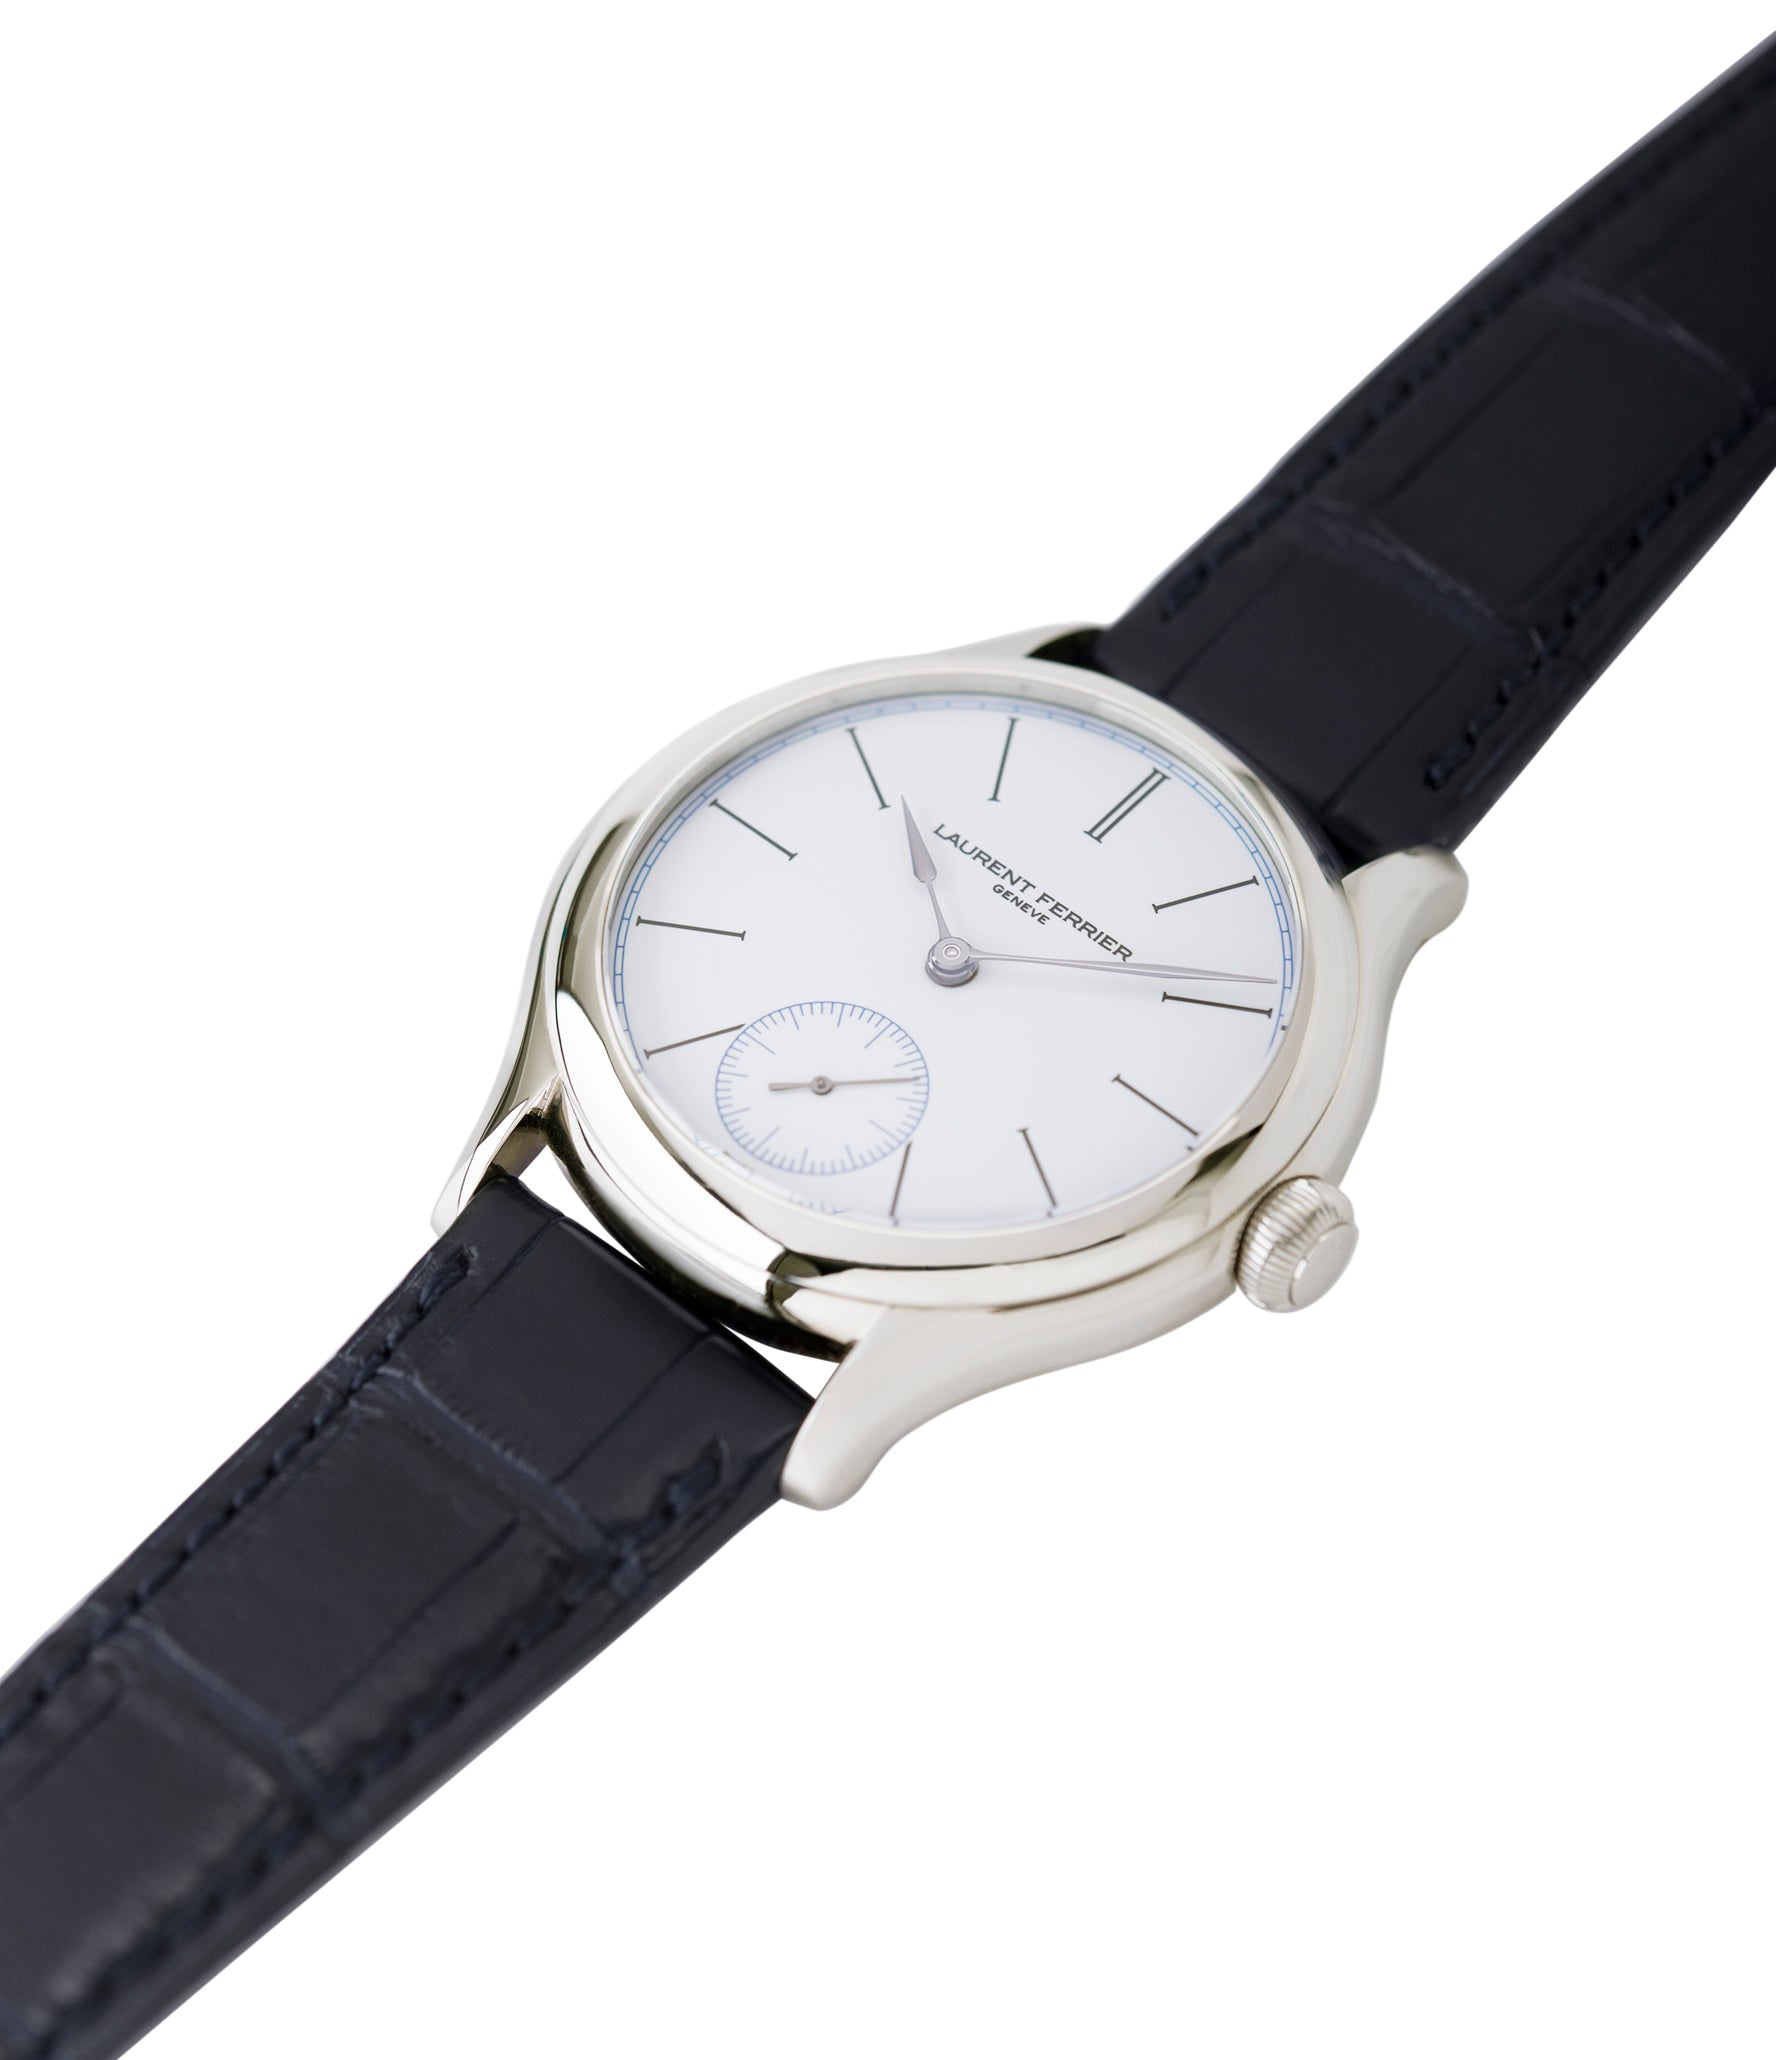 selling preowned Laurent Ferrier Galet Micro-Rotor FBN 230.02 Enamel dial steel watch for sale online at A Collected Man London UK approved seller of independent watchmaker Laurent Ferrier